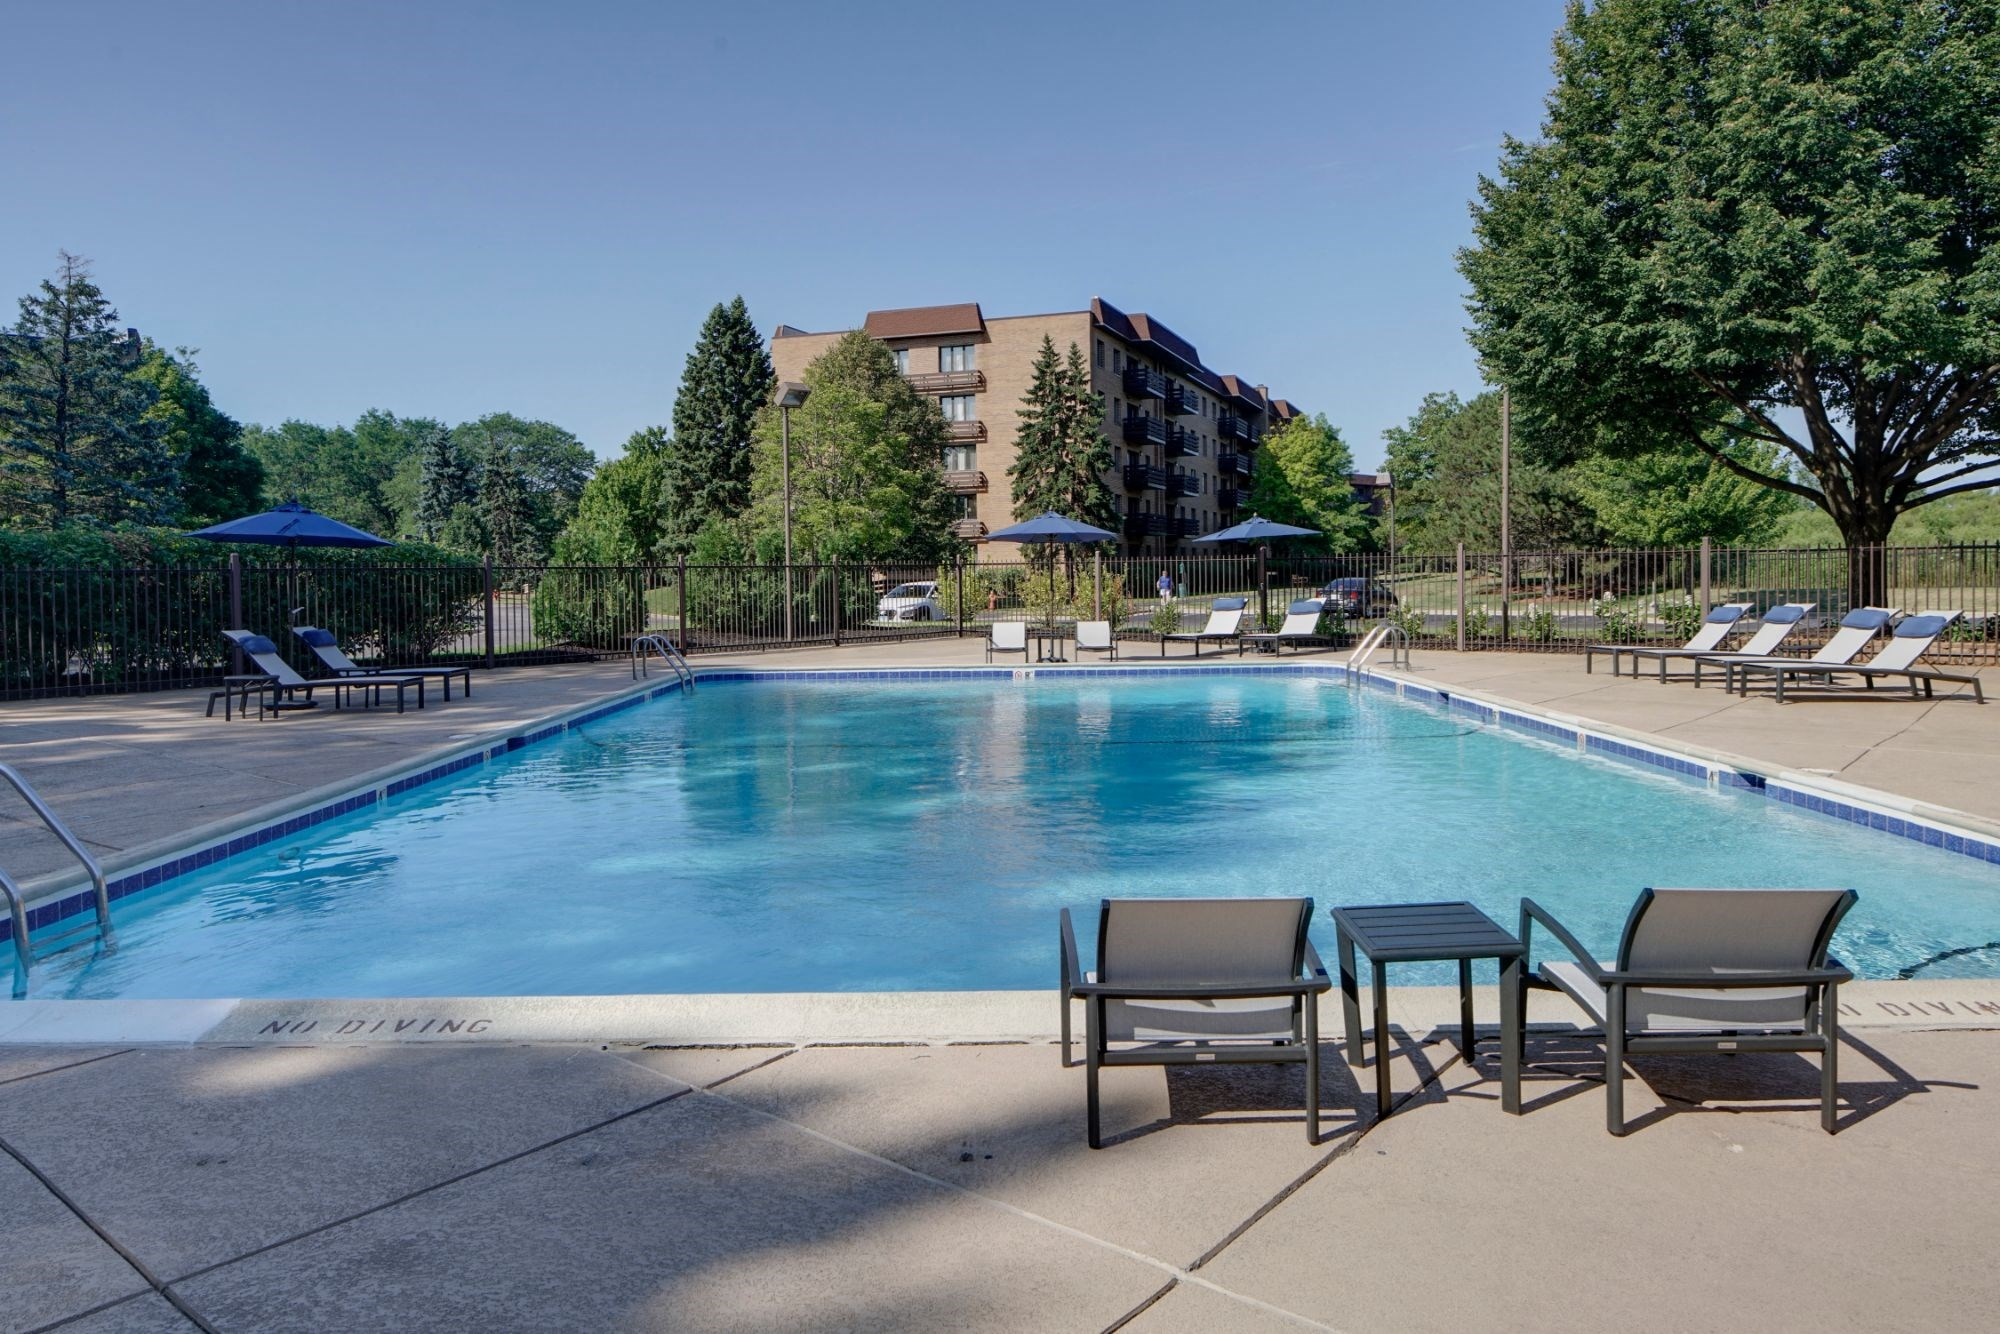 Pool Side Relaxing Area With Sundeck, at Valley Lo Towers, Glenview Illinois